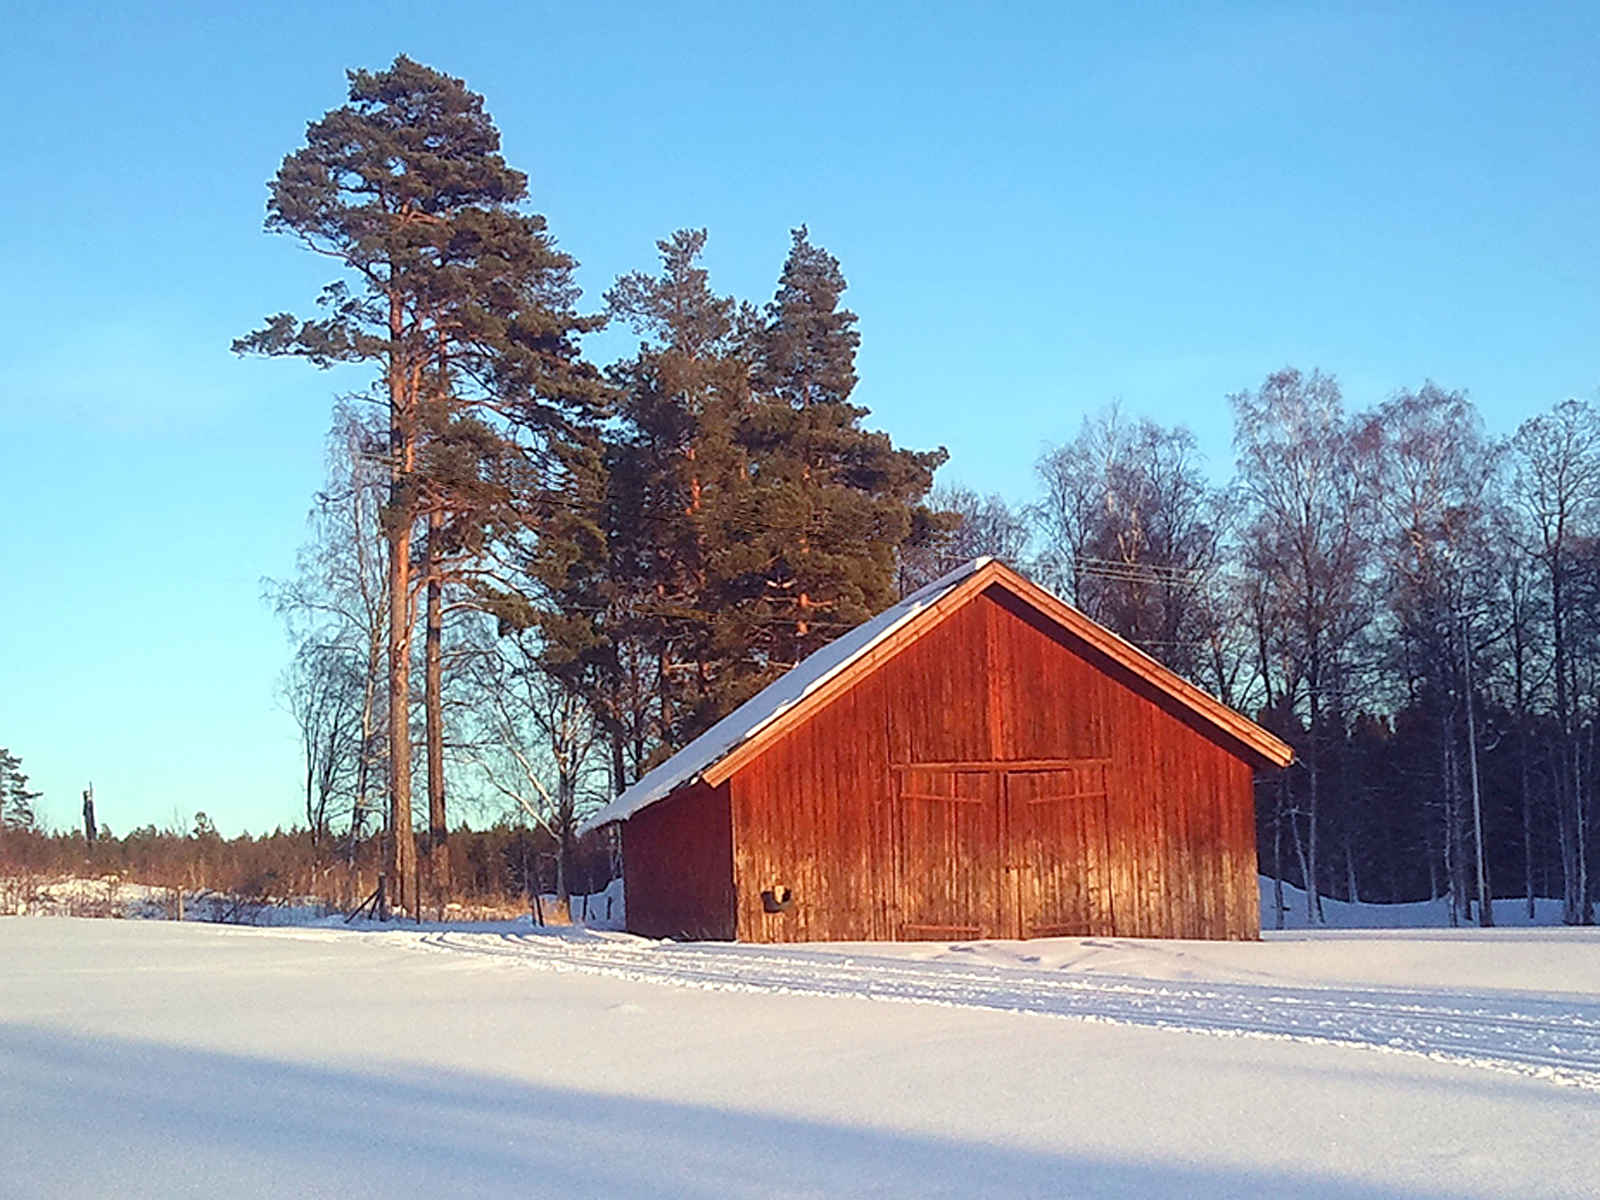 Old Winter Red Wallpaper Sky House Snow Building Tree Nature Skyline Barn Rural Landscape Photography Landscapes